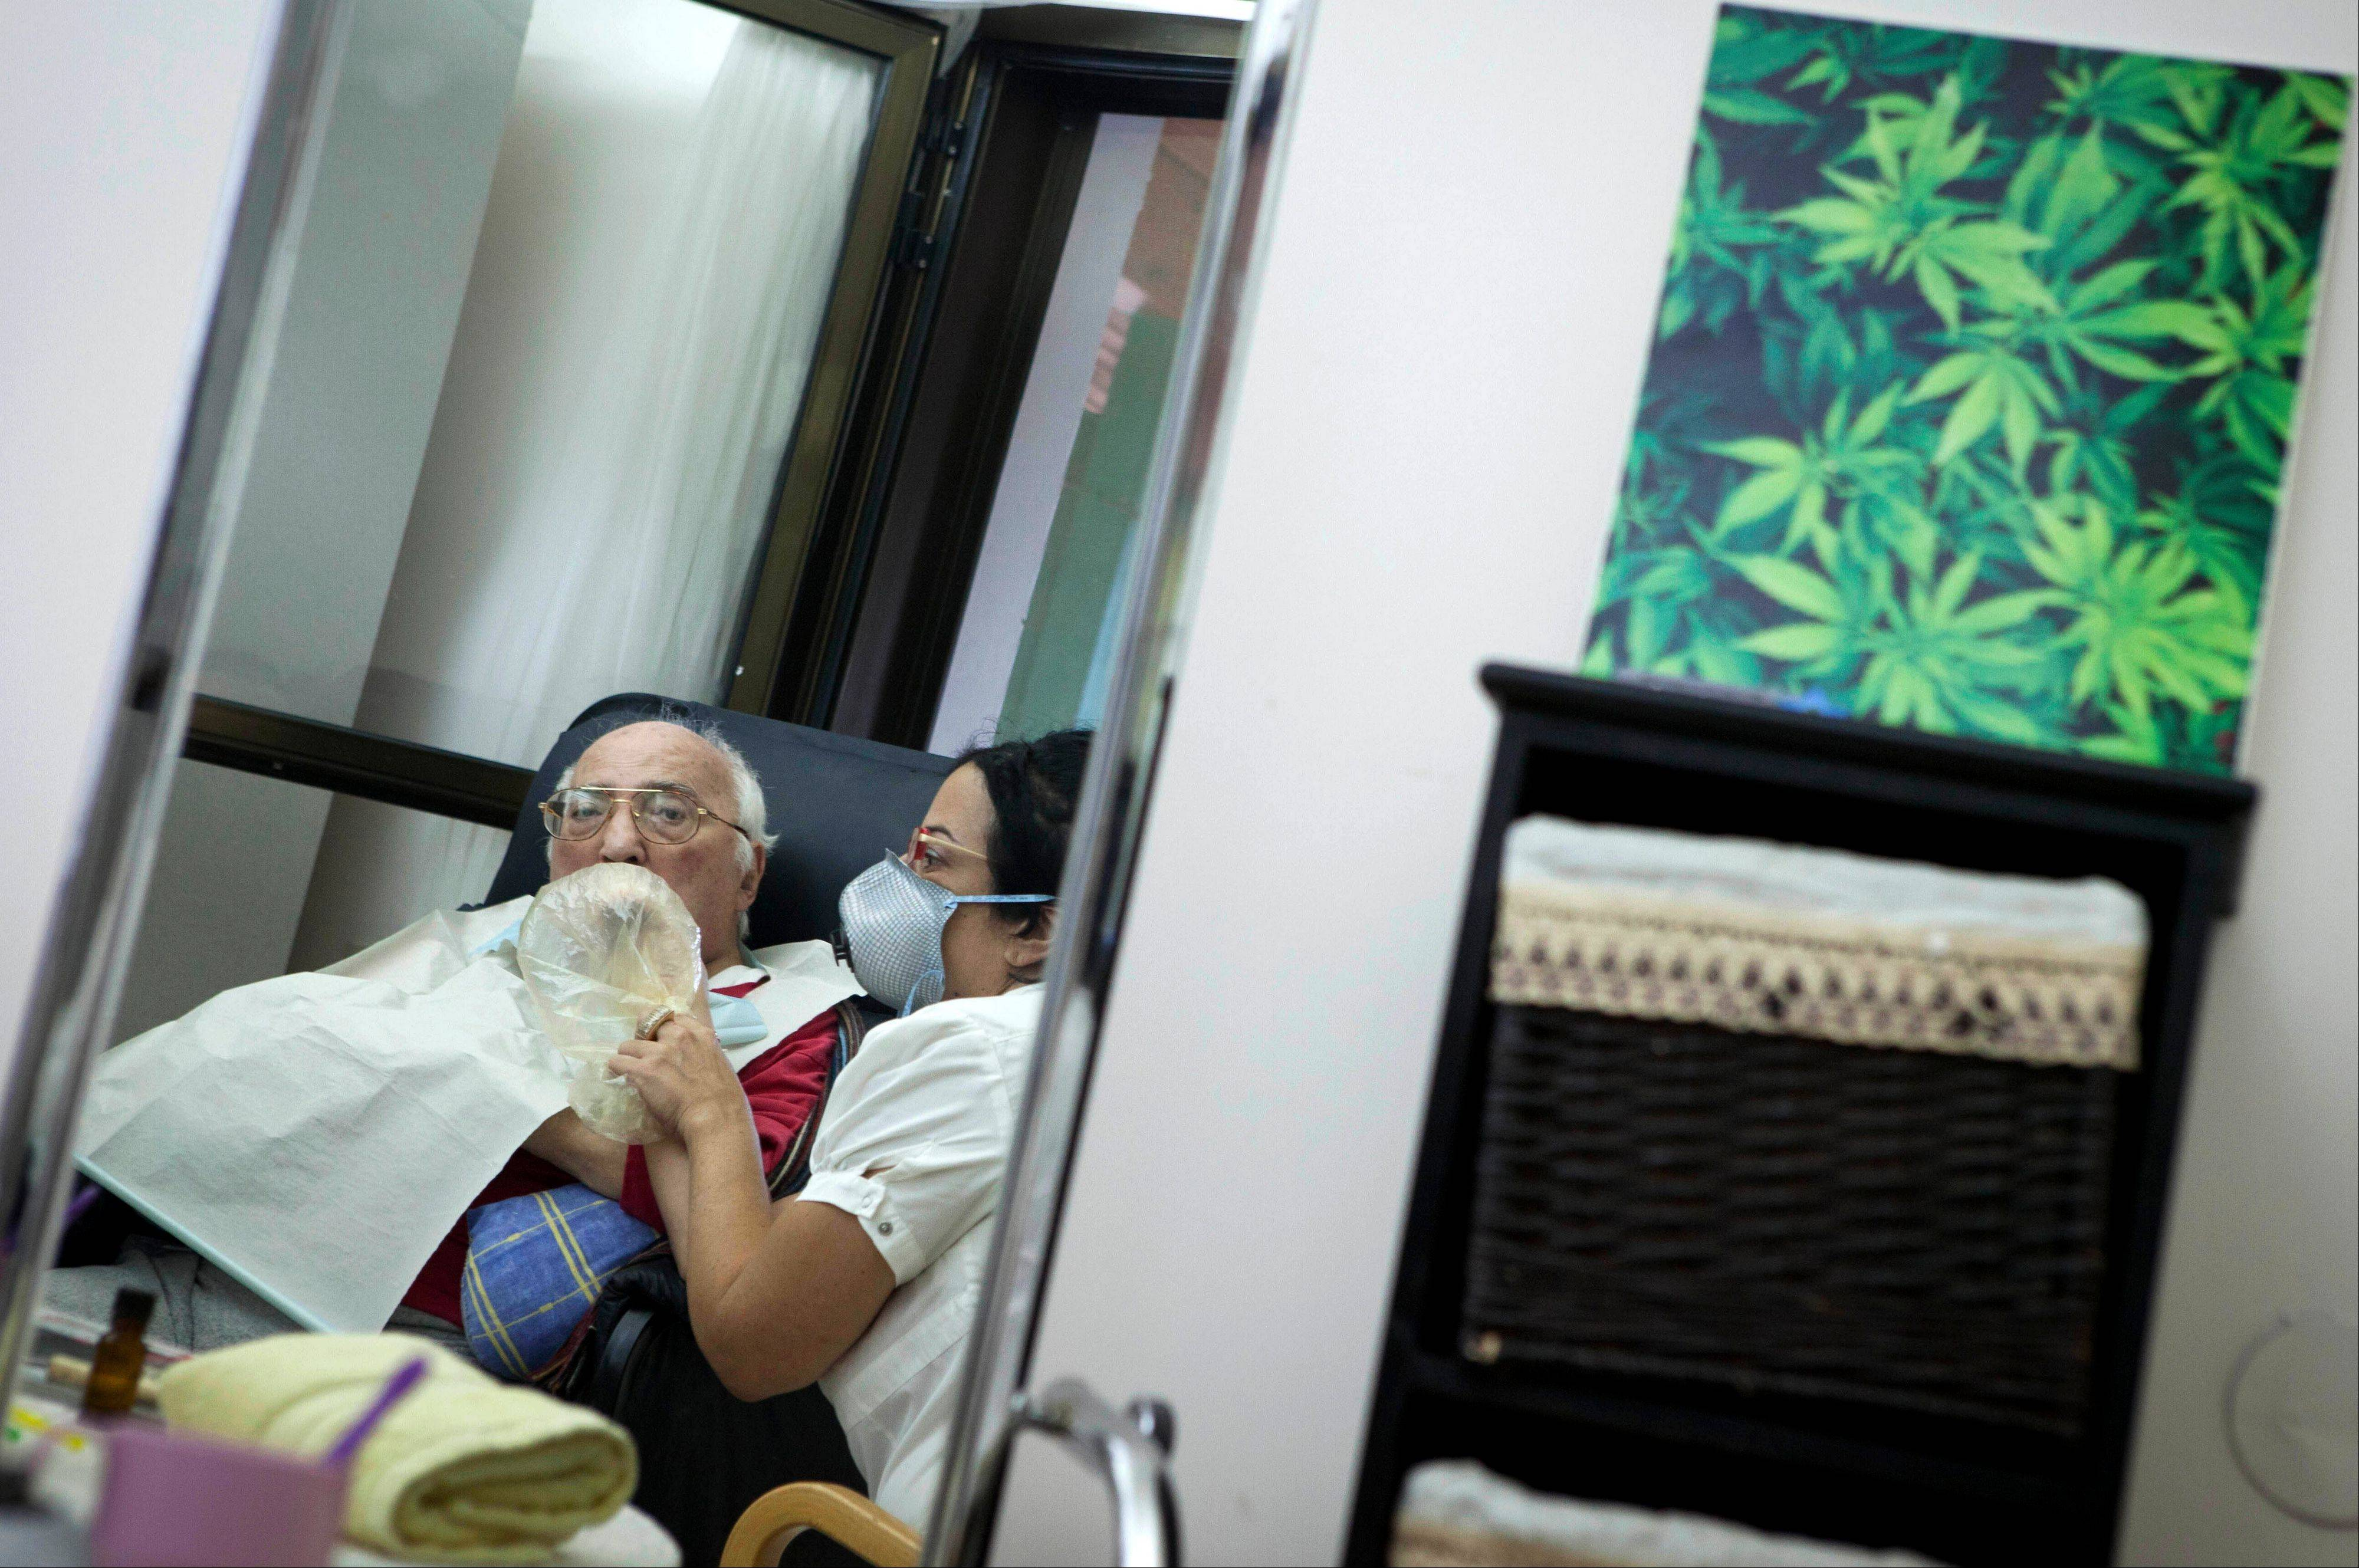 Rom Germad inhales medical cannabis at the old age nursery home in kibbutz Naan next to the city of Rehovot, Israel.